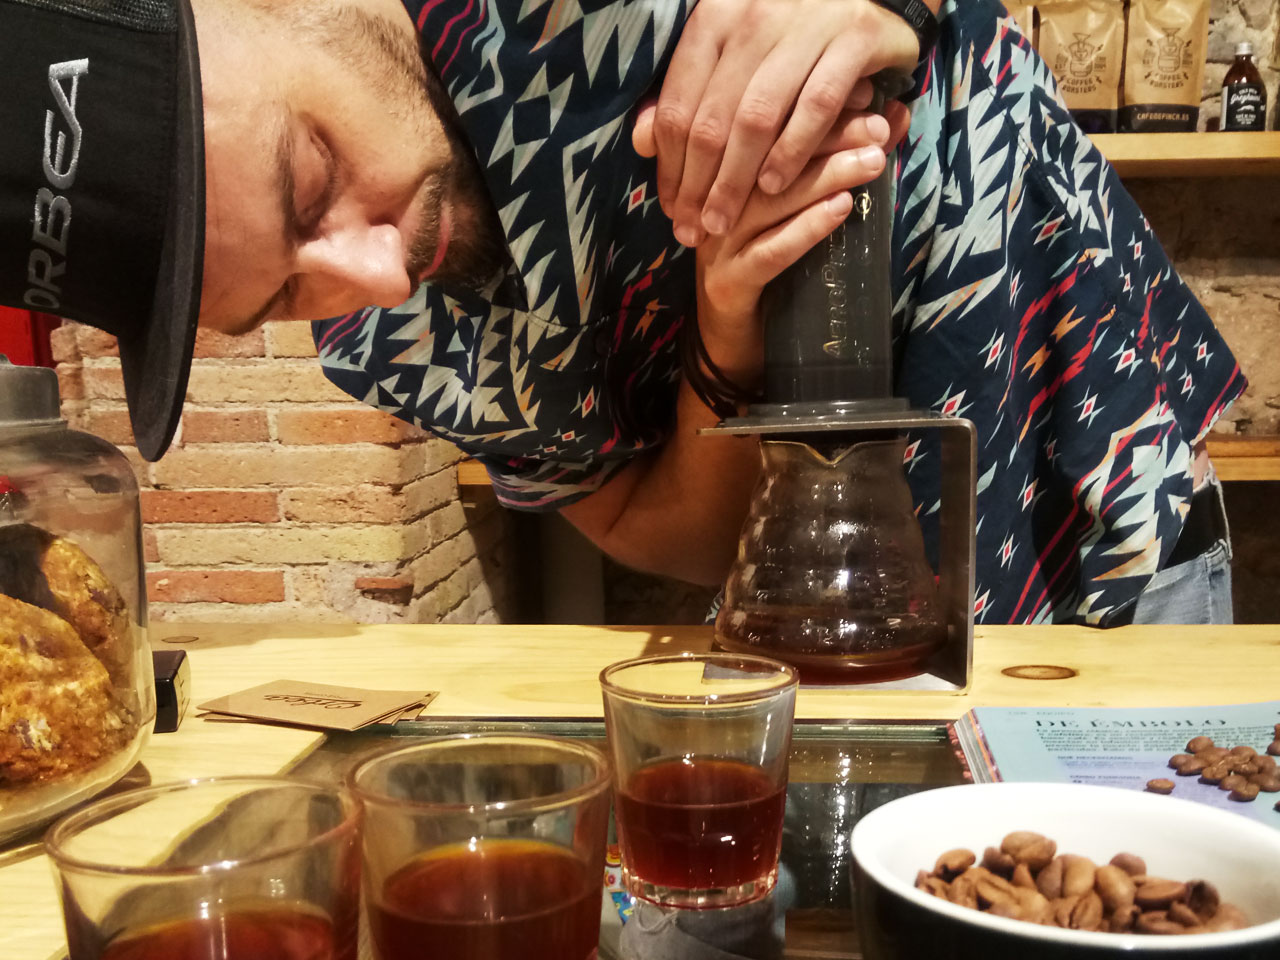 Aeropress: the coffee is literally pushed into the glass vase, by pressing constantly.